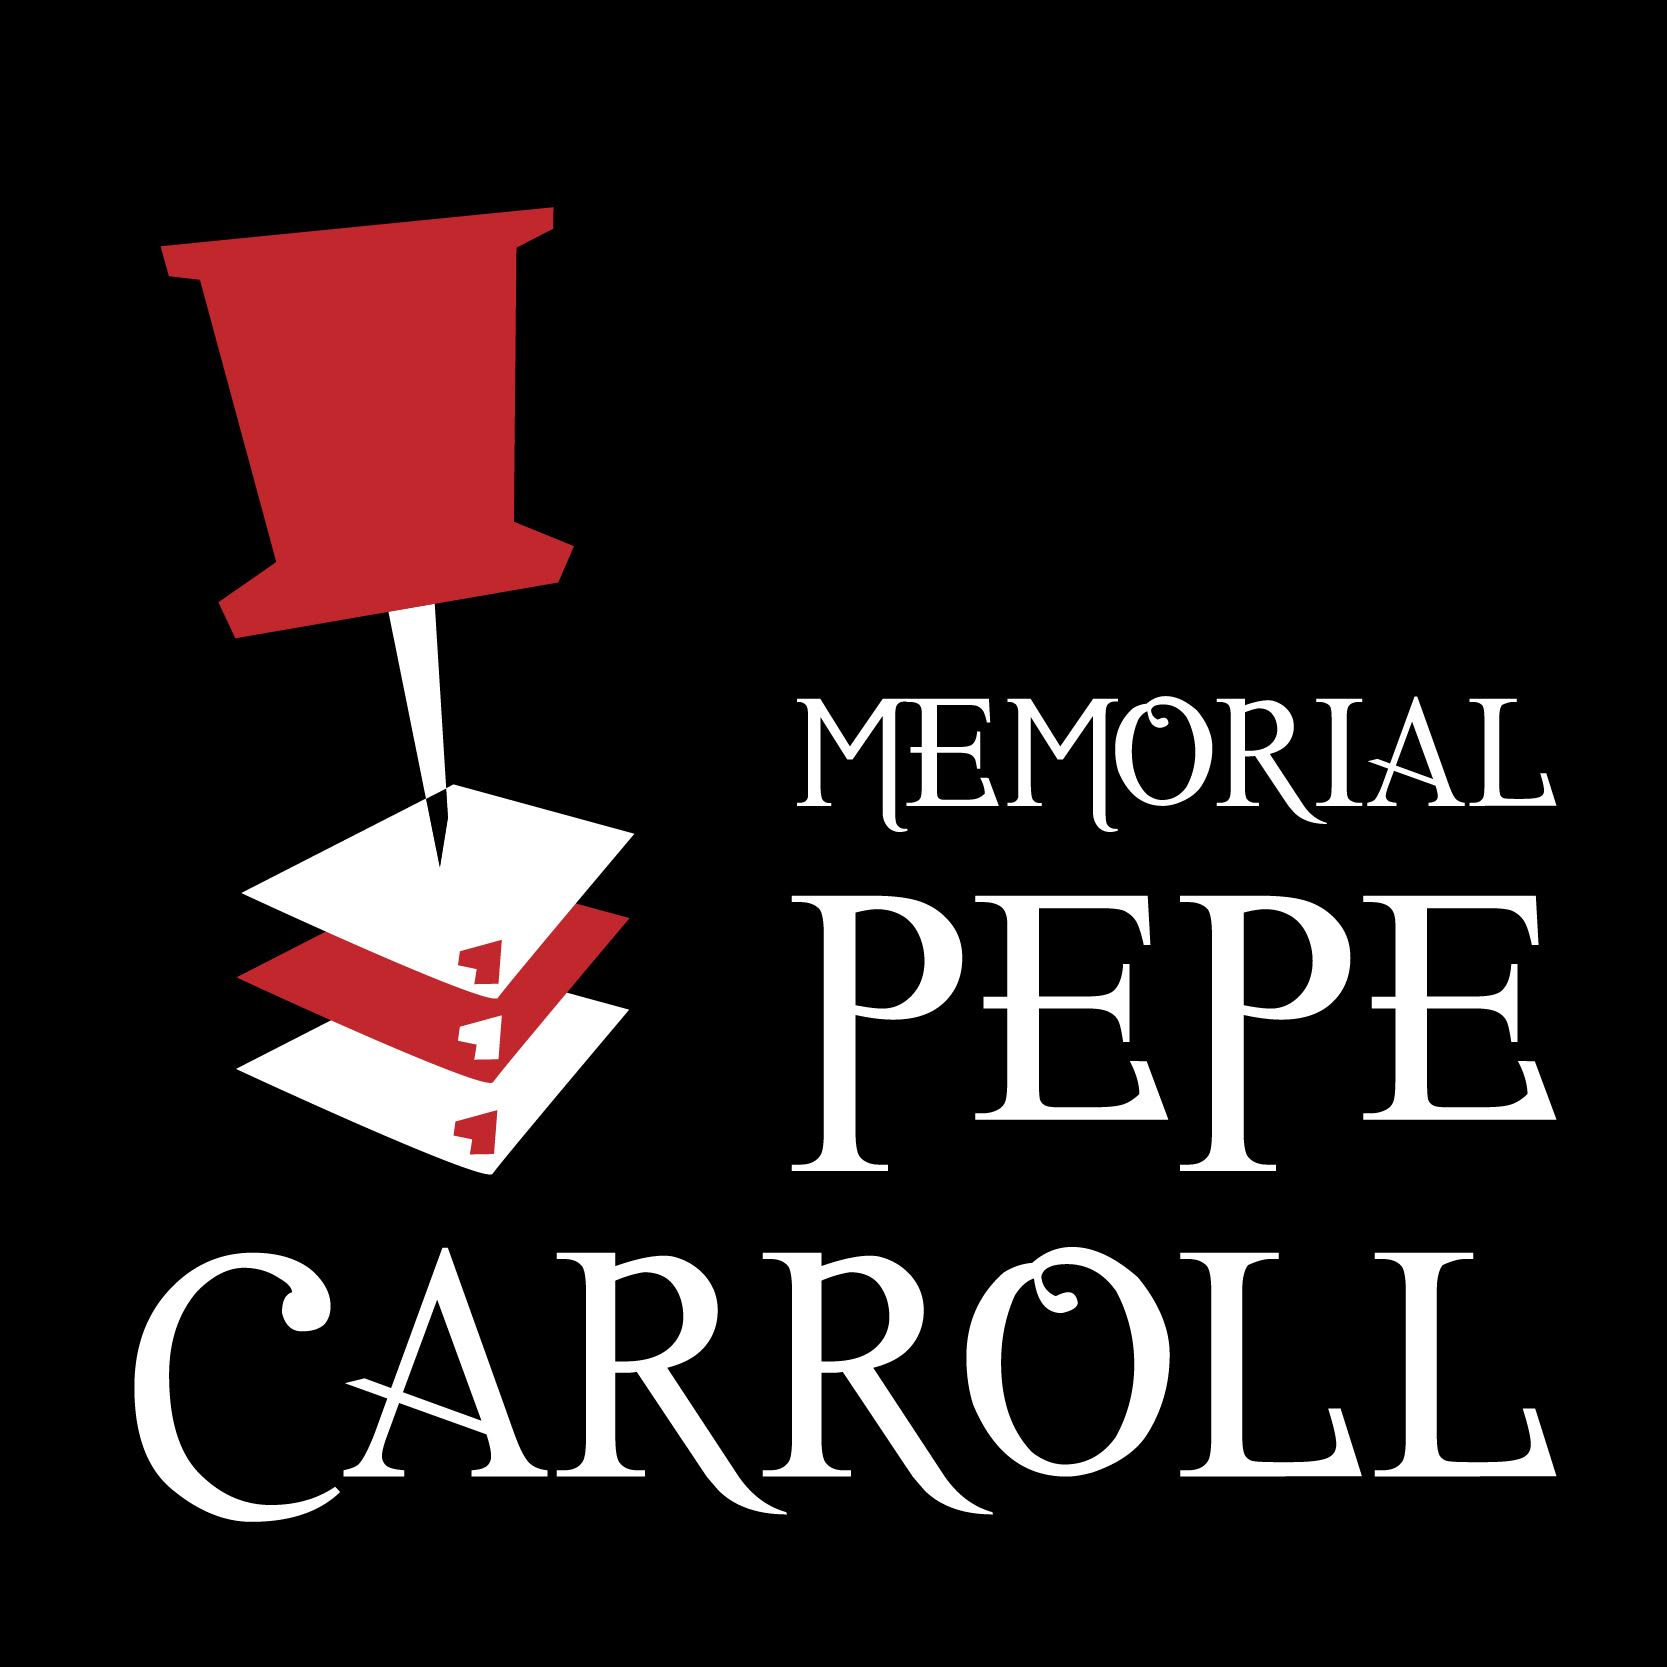 MEMORIAL PEPE CARROL